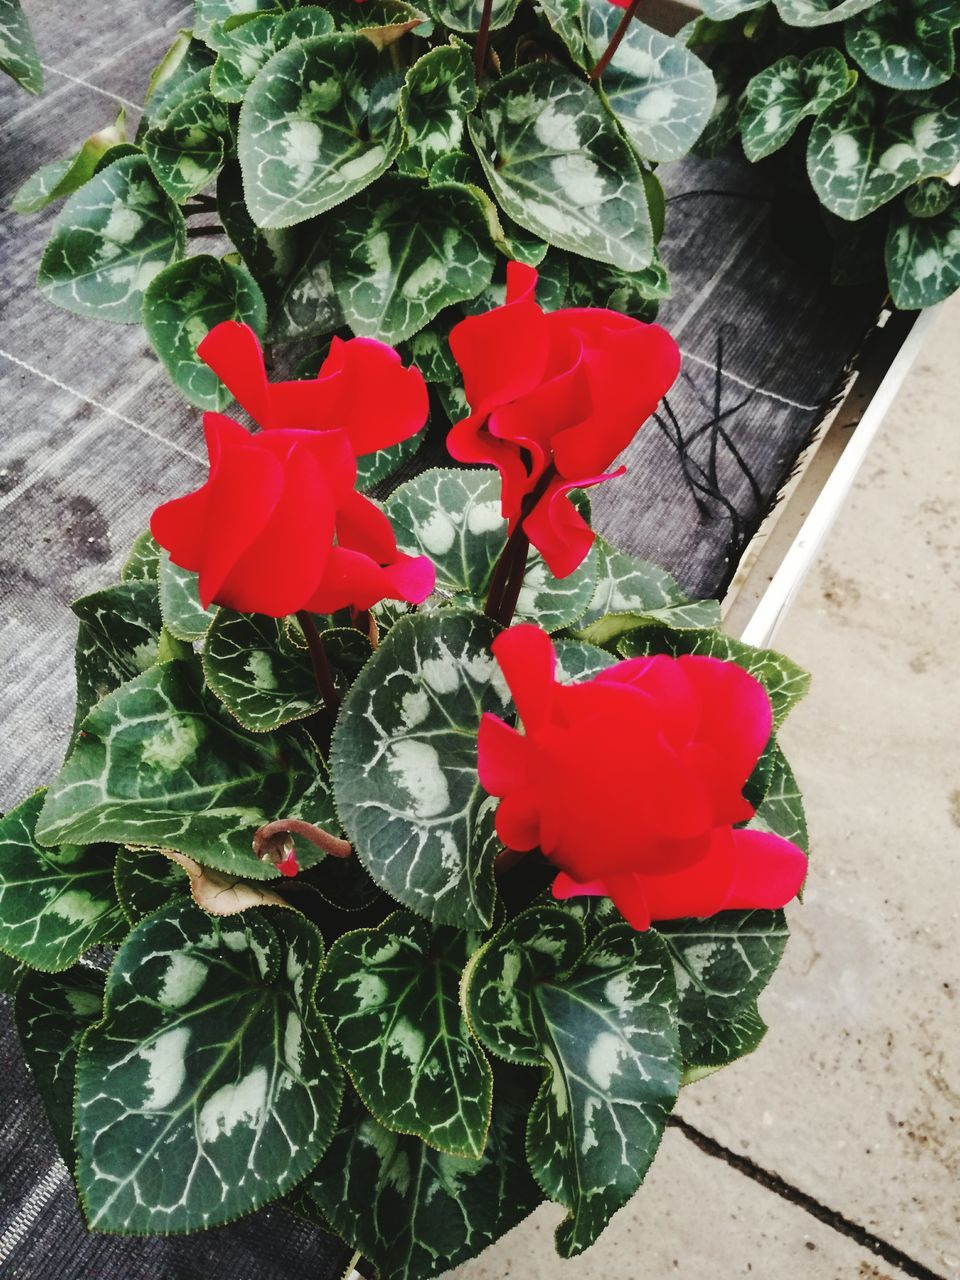 flower, petal, leaf, plant, growth, fragility, red, freshness, nature, rose - flower, high angle view, flower head, no people, beauty in nature, green color, love, day, blooming, outdoors, close-up, periwinkle